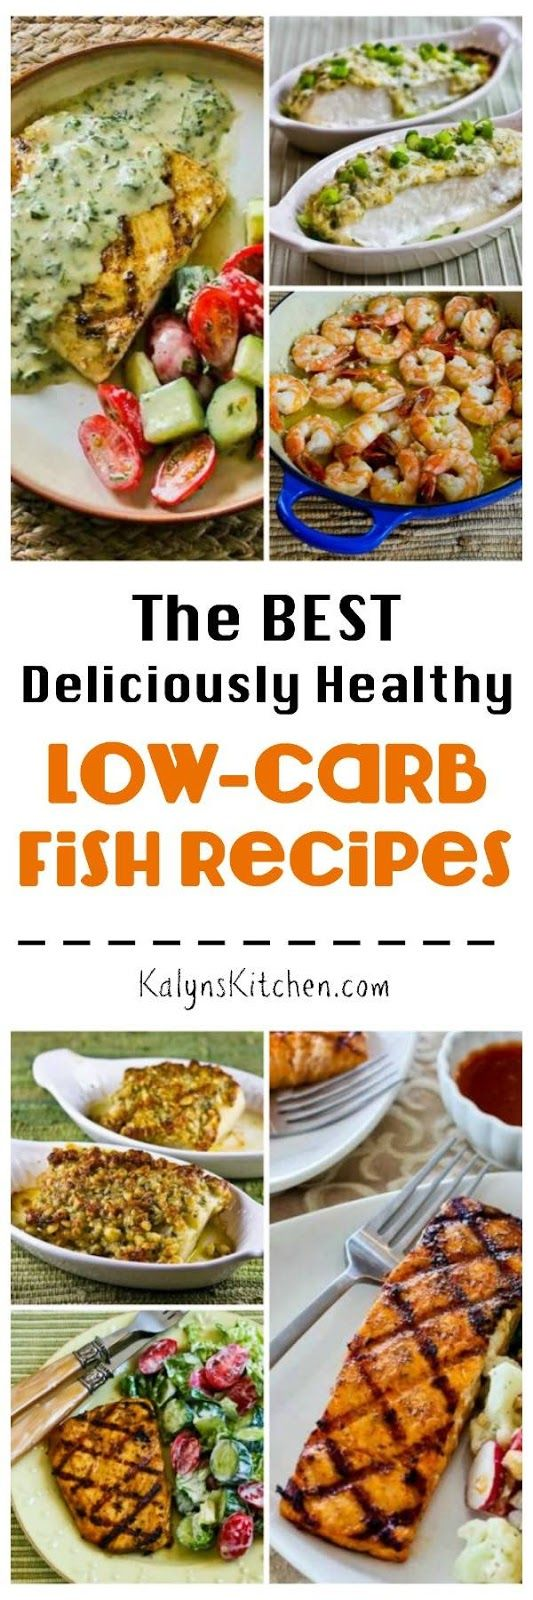 100 best seafood recipes on pinterest best scallop for Carbs in fish